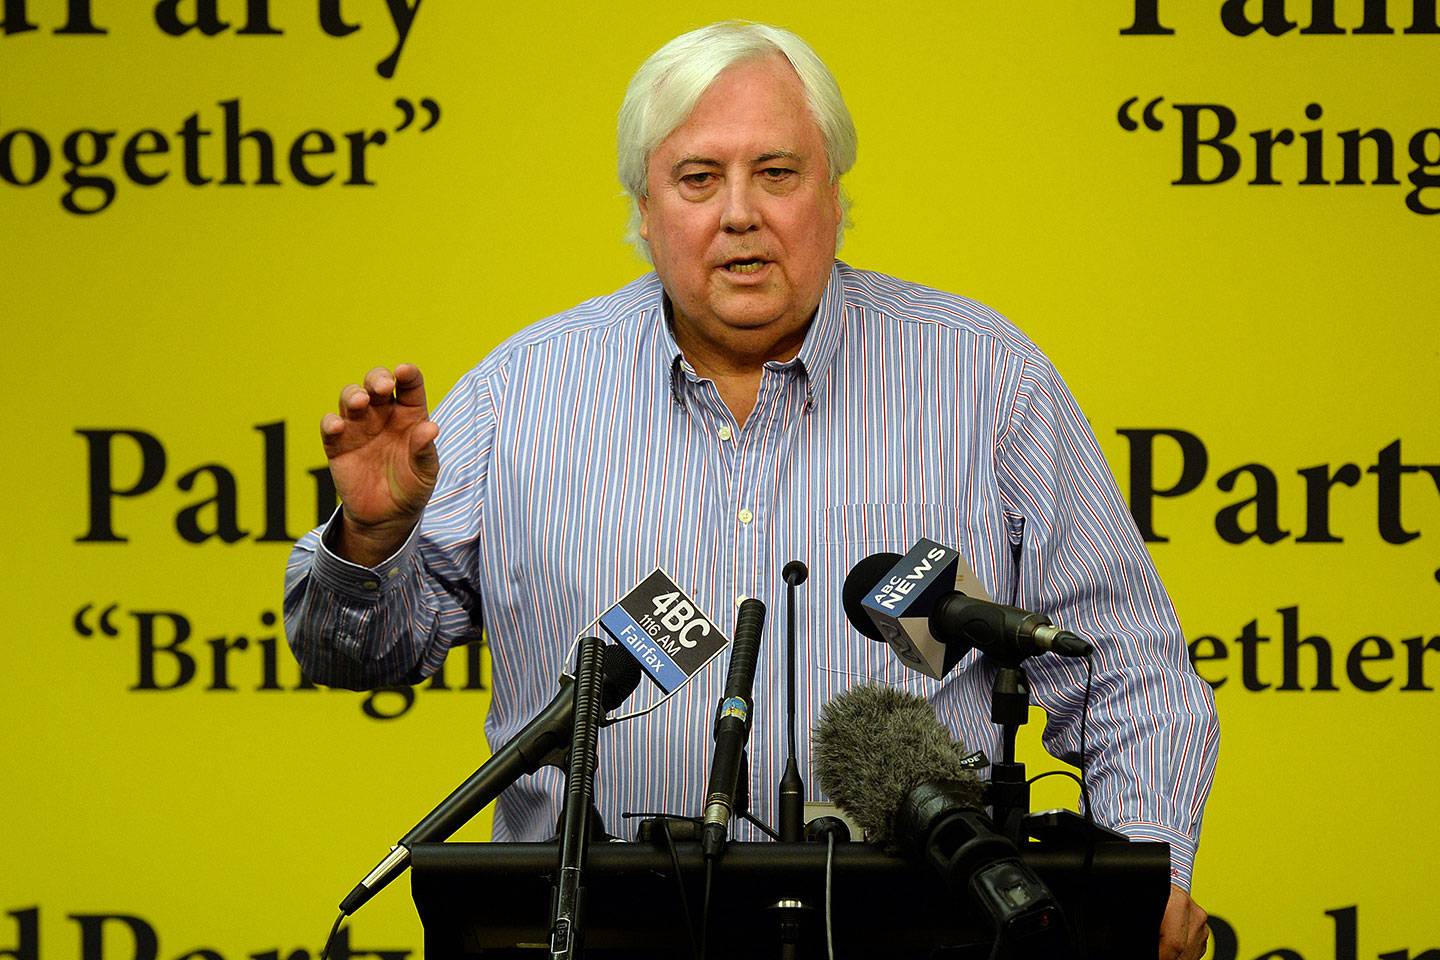 Millionaire businessman Clive Palmer hit with criminal charges by ASIC